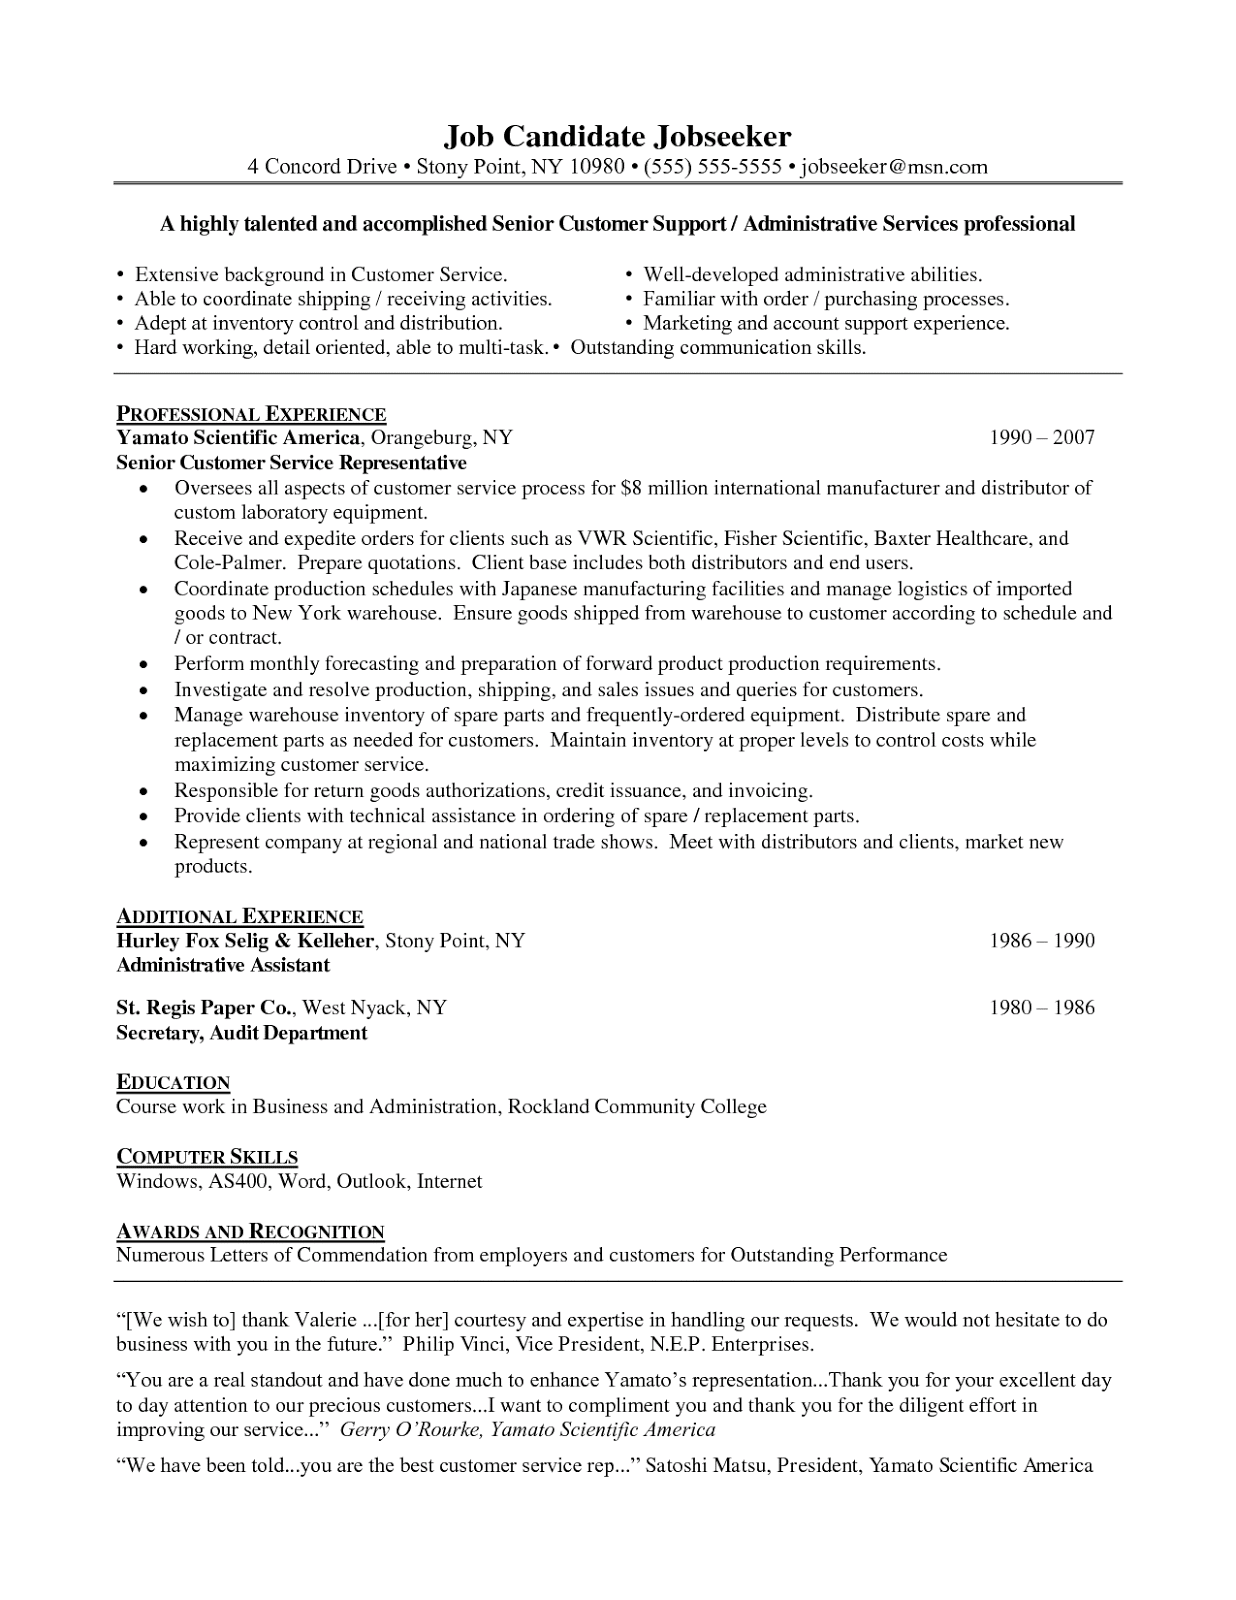 customer support resume summary resume samples customer service good resume summary examples resume samples customer service - Resume Templates Customer Service